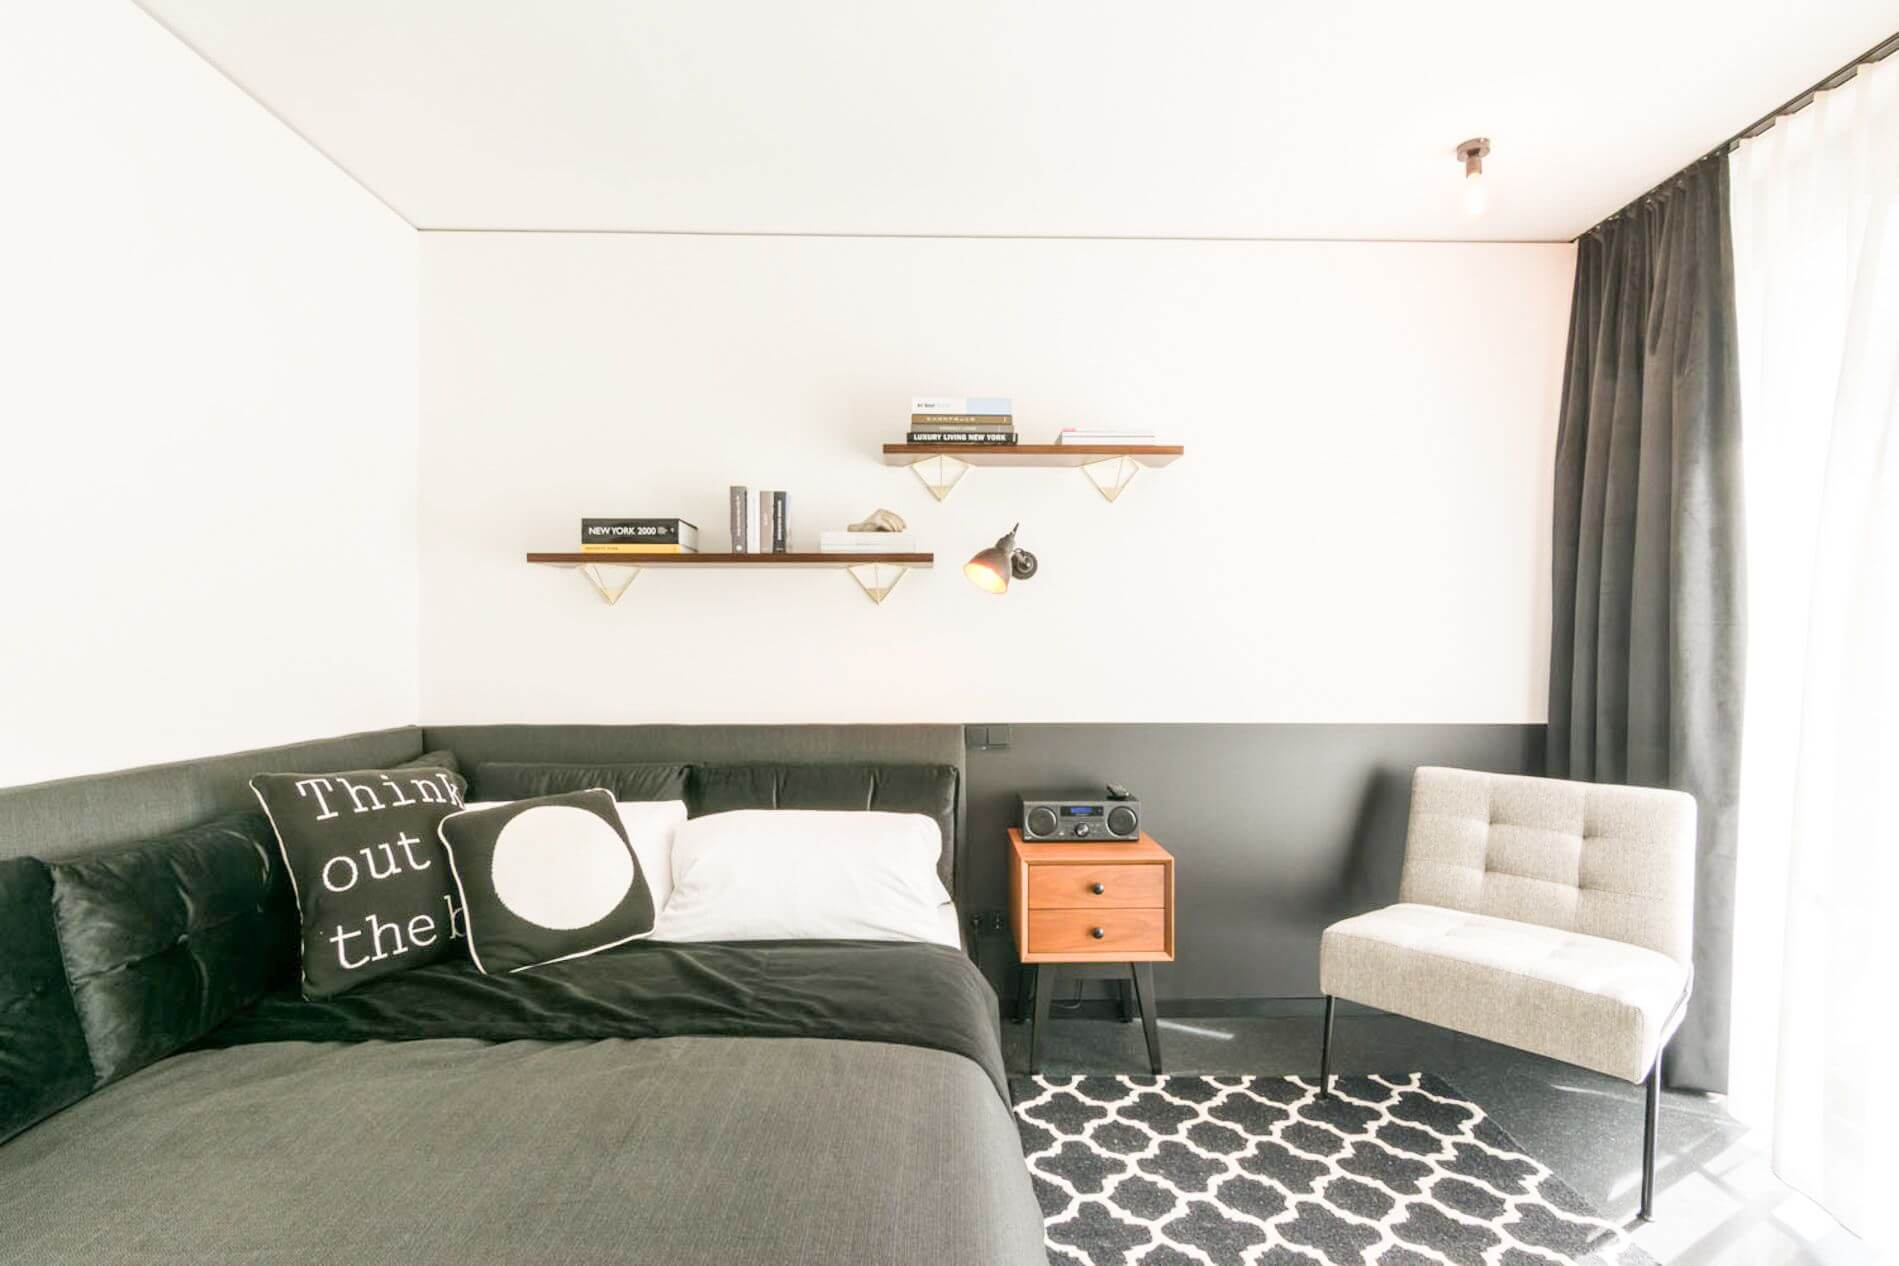 1 bedroom serviced apartment rental in Munich